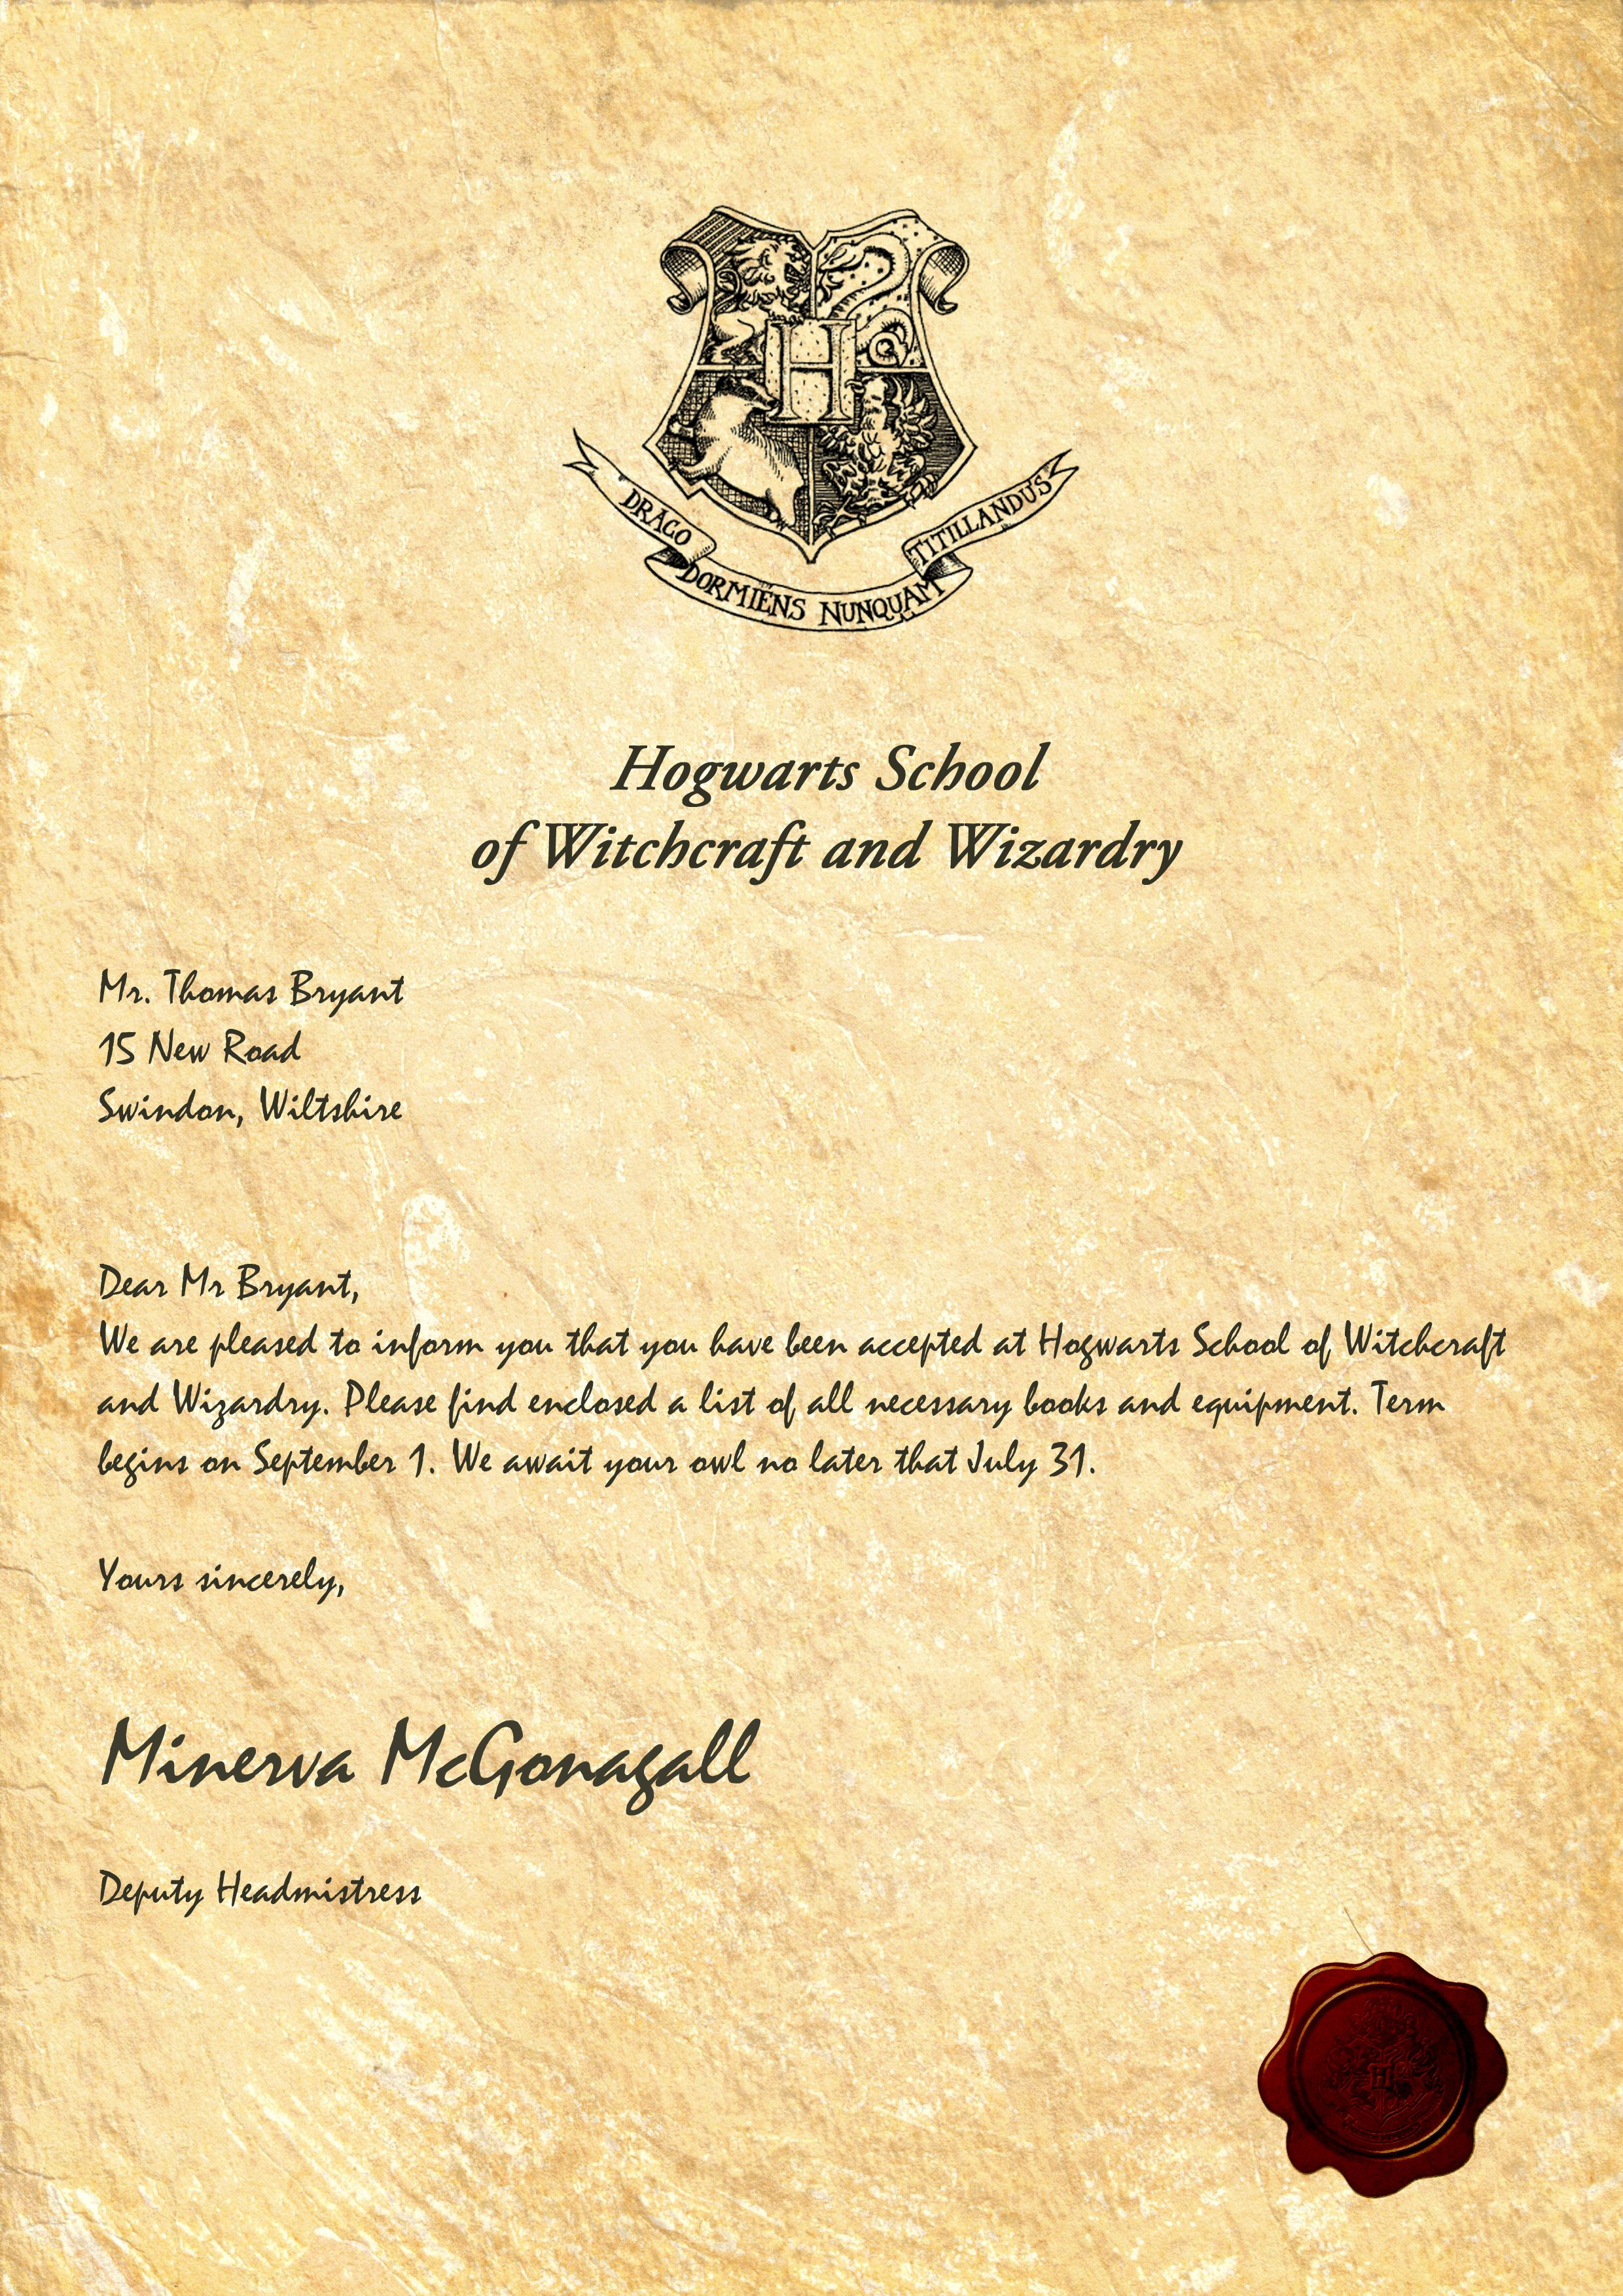 My Hogwarts Acceptance Letter Sadly My Owl Died From The Long Fly - Hogwarts Acceptance Letter Template Free Printable